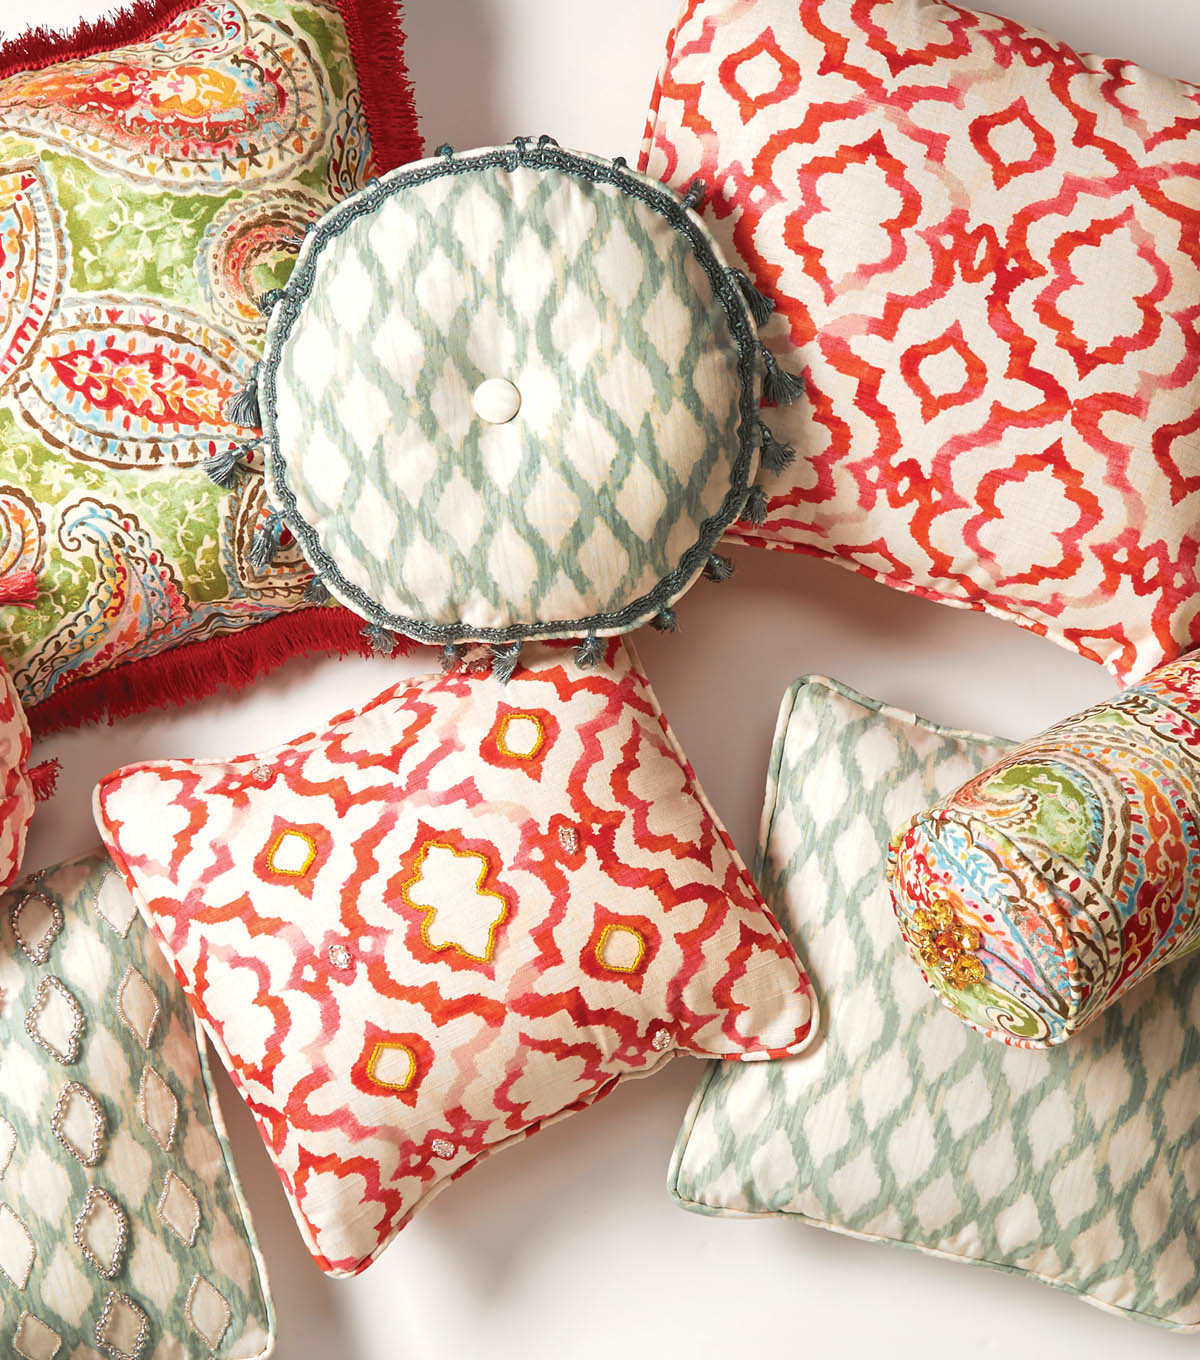 Embellished Pillows